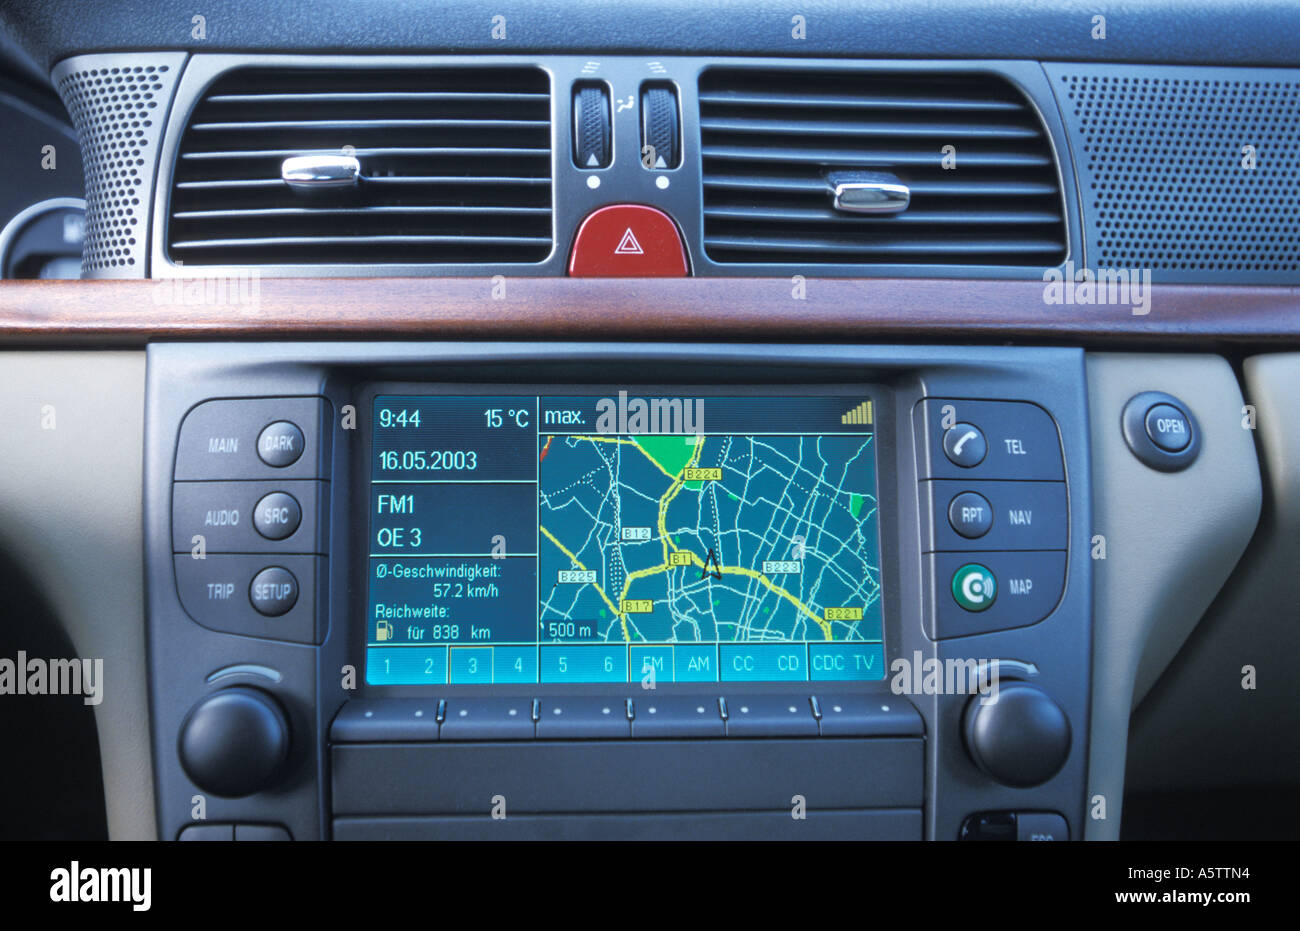 display of a navigation system in the car - Stock Image